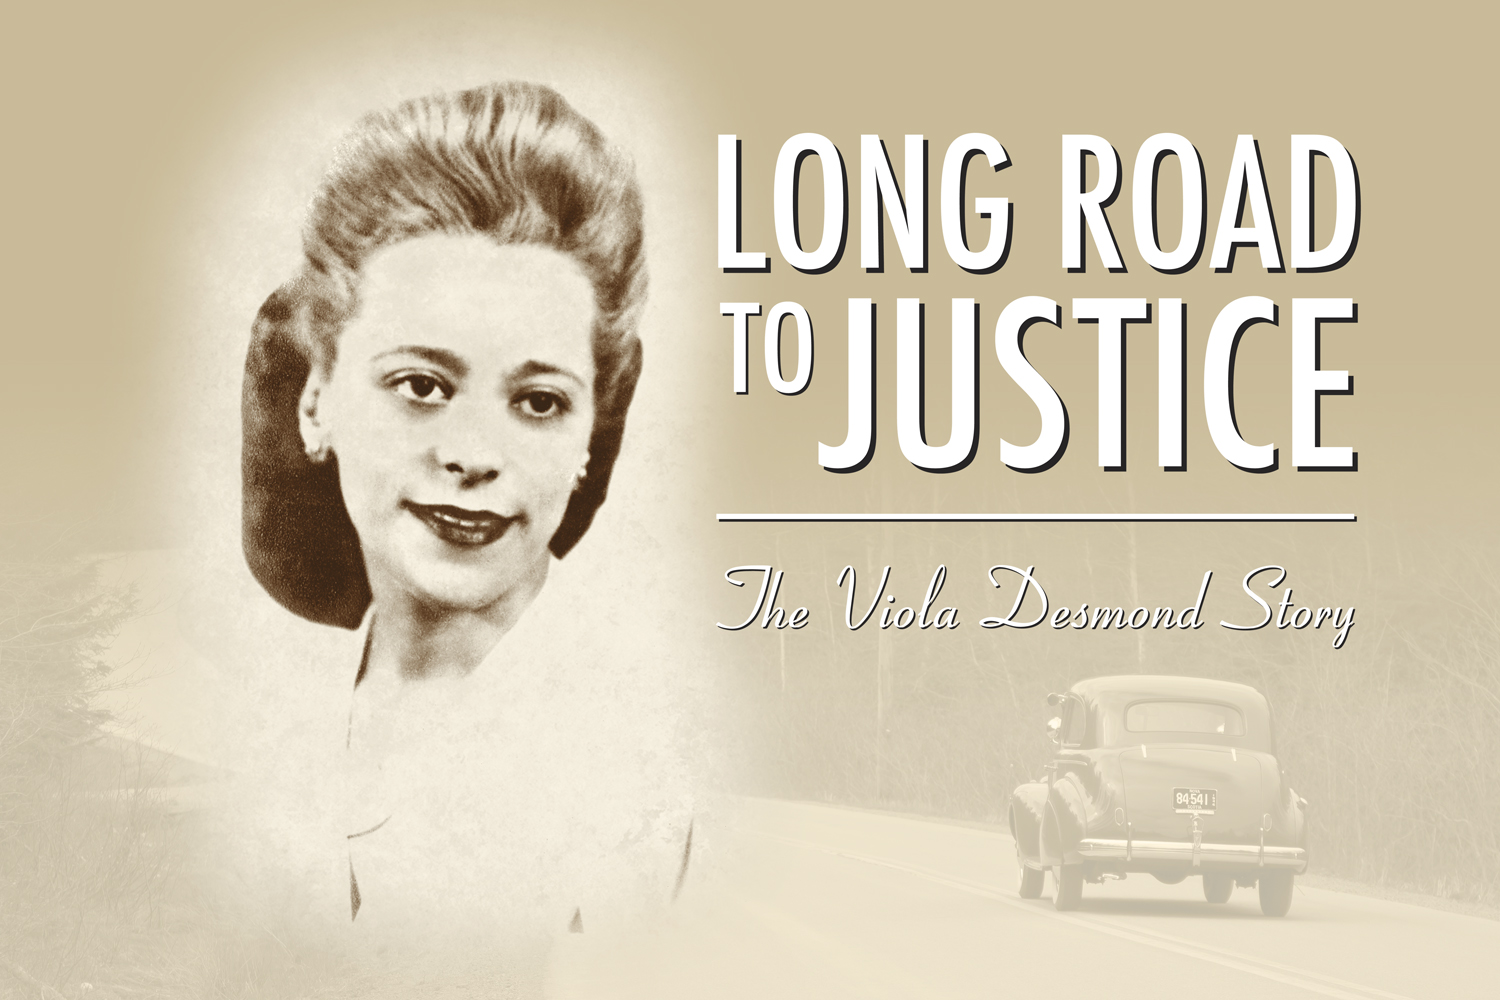 http://novascotia.ca/news/smr/2011-09-16-Long-Road-to-Justice/media/LOng_Road_to_Justice_Horizontal.jpg